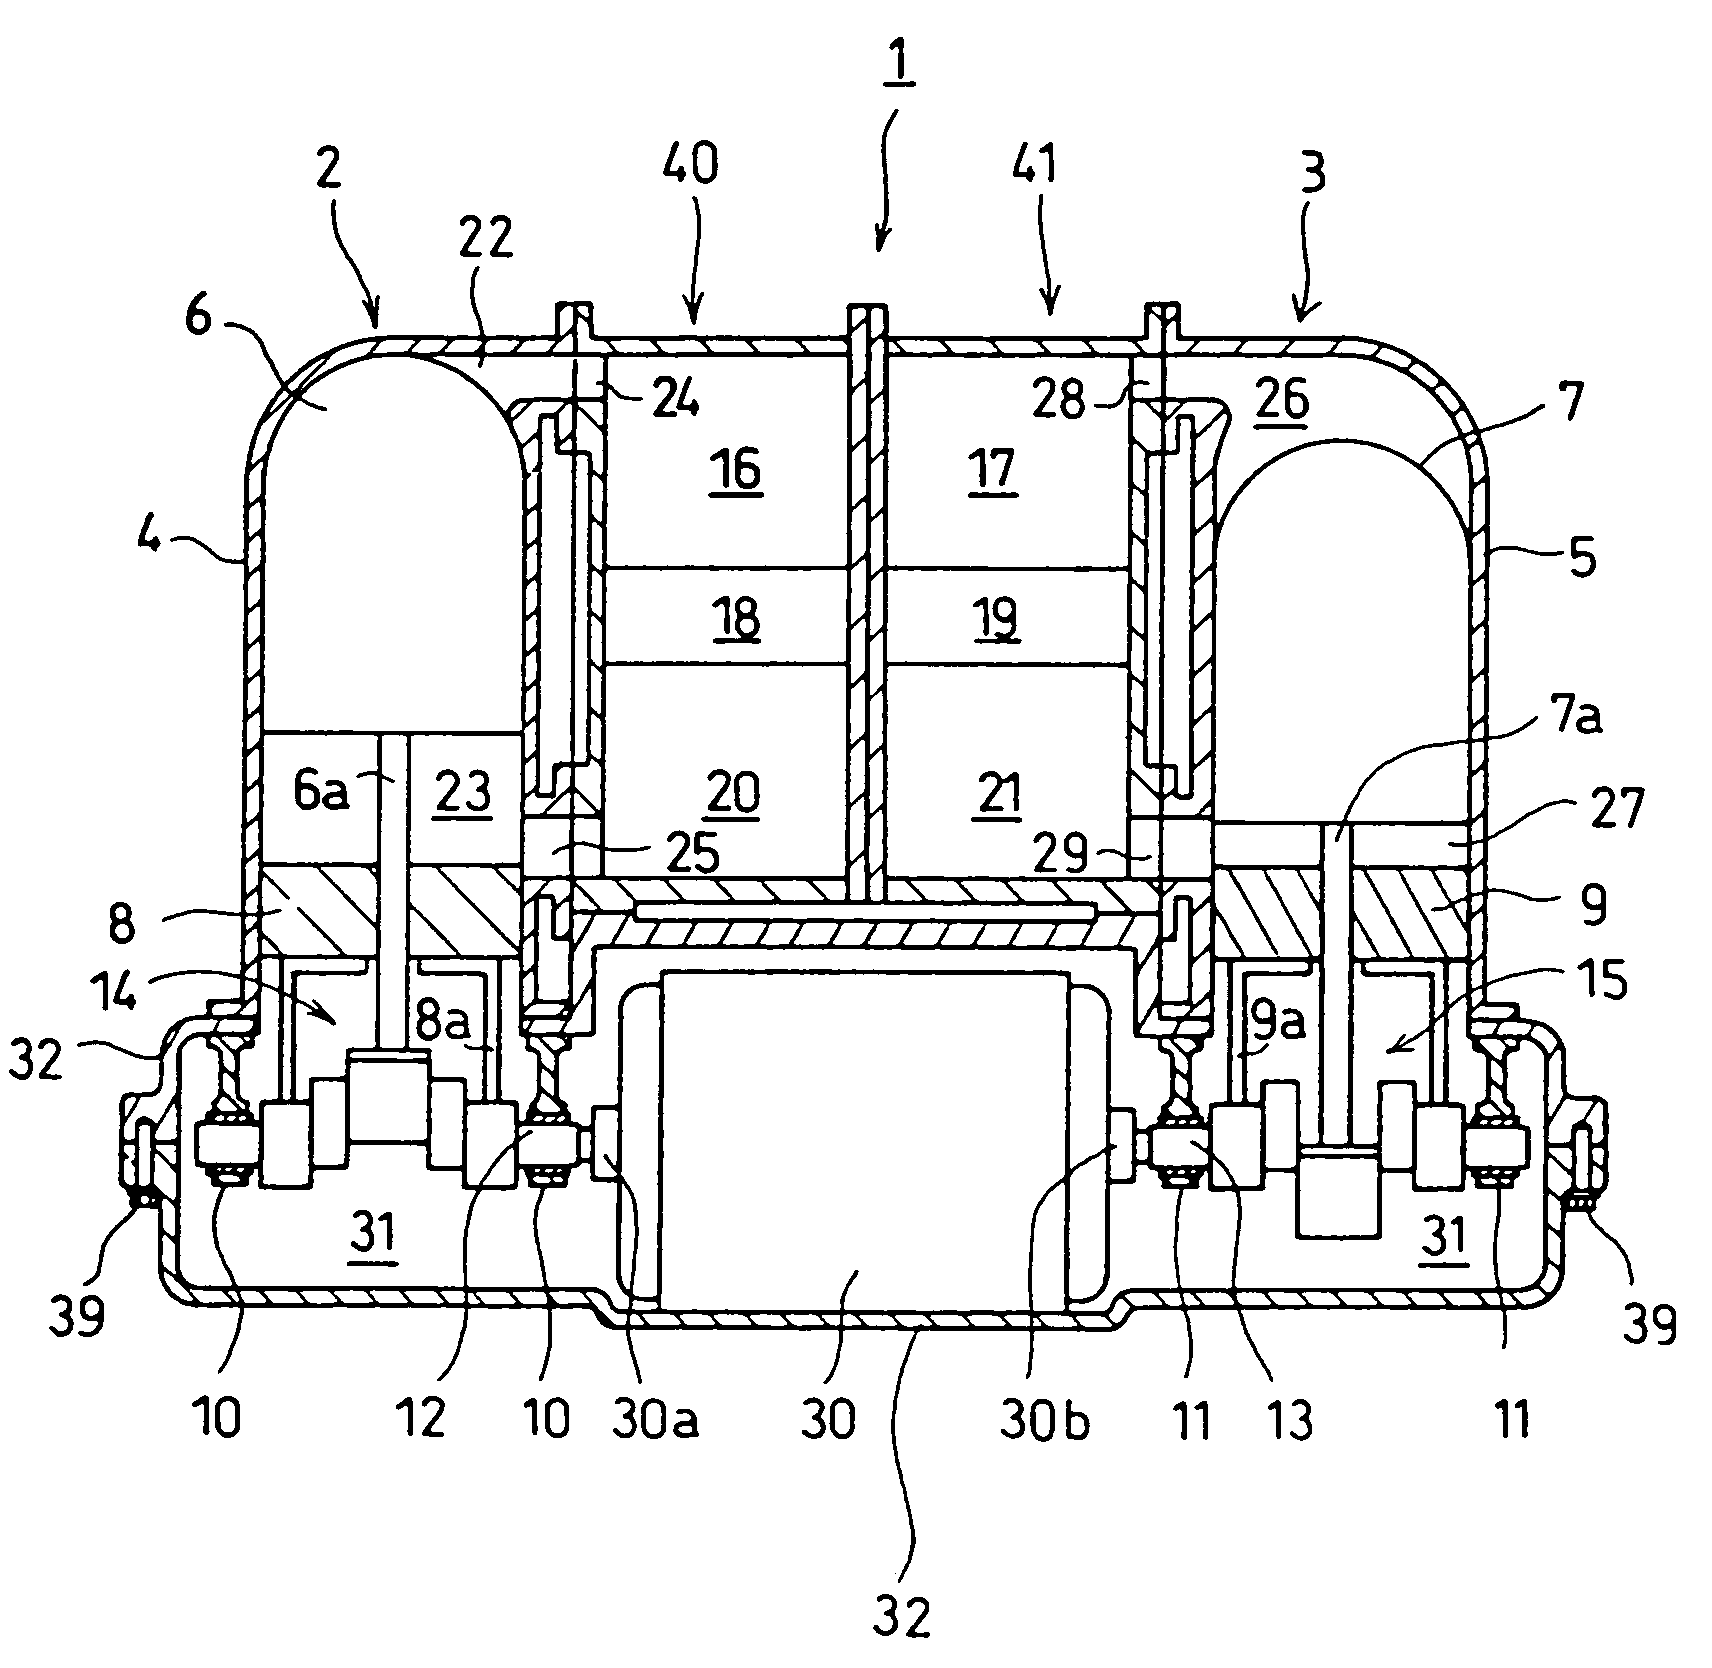 multistage stirling engine us 7484366 b2 patent drawing [ 1712 x 1668 Pixel ]